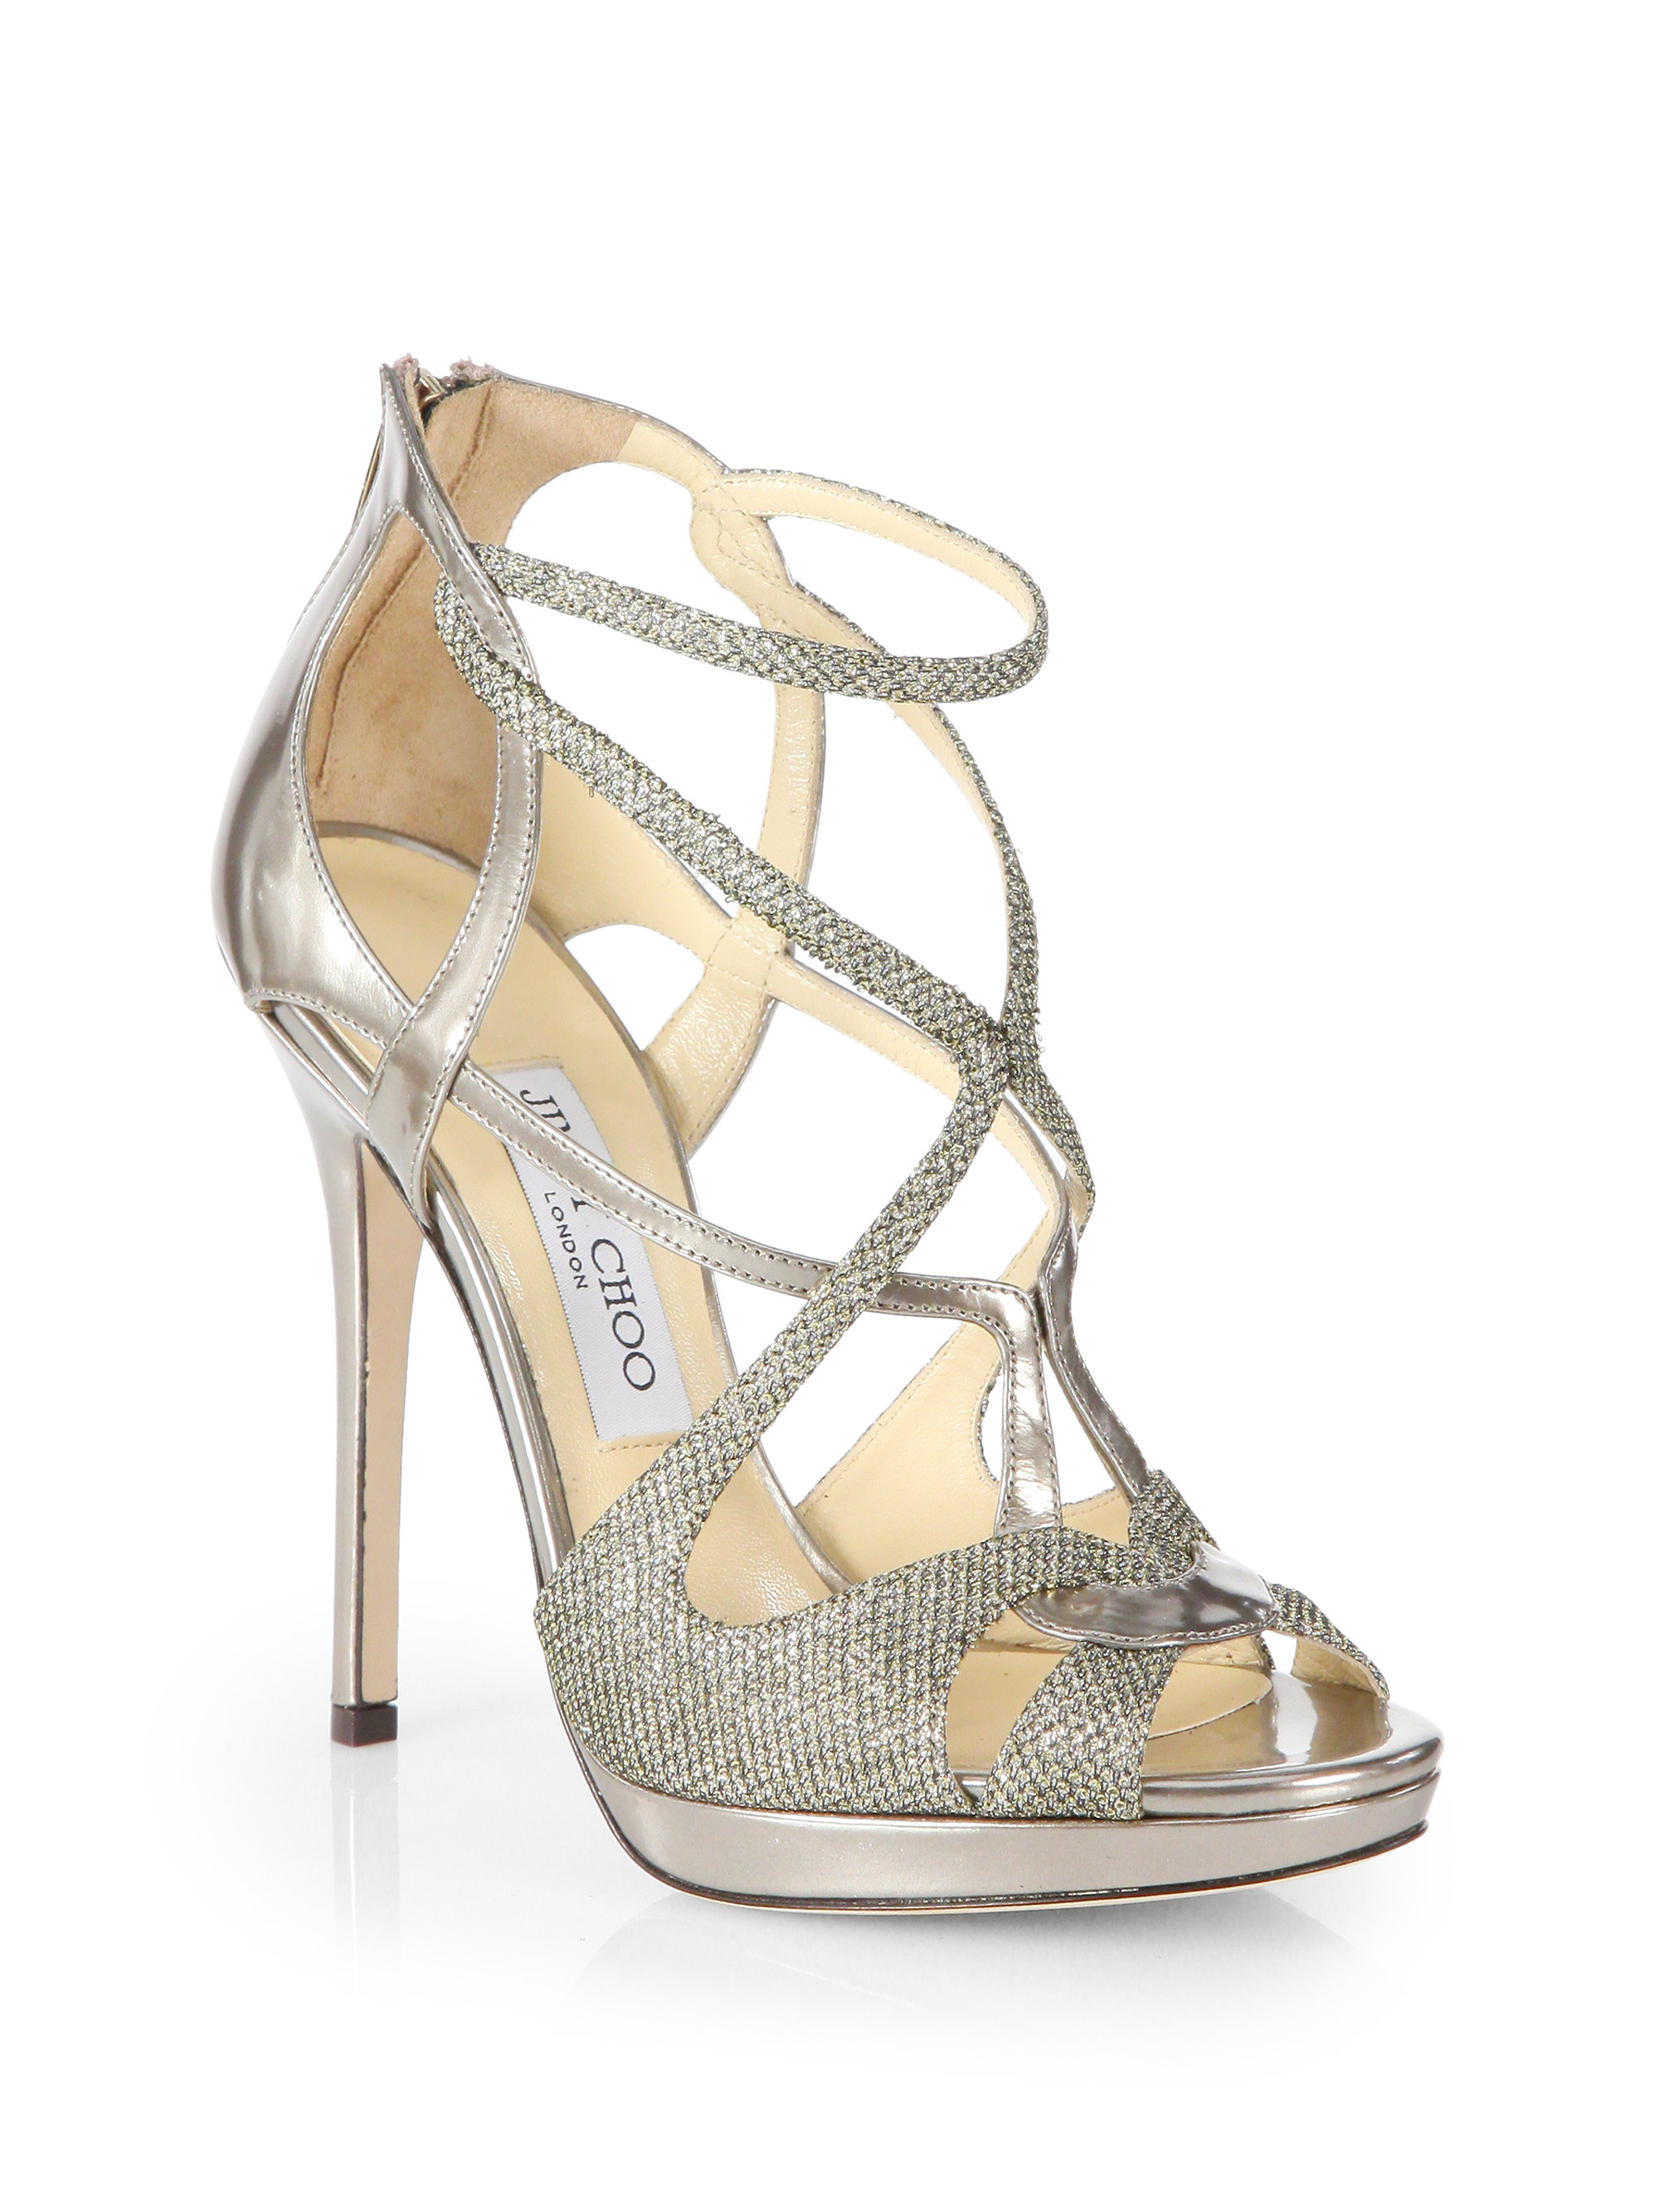 Jimmy Choo Sazerac Glitter Metallic Leather Strappy